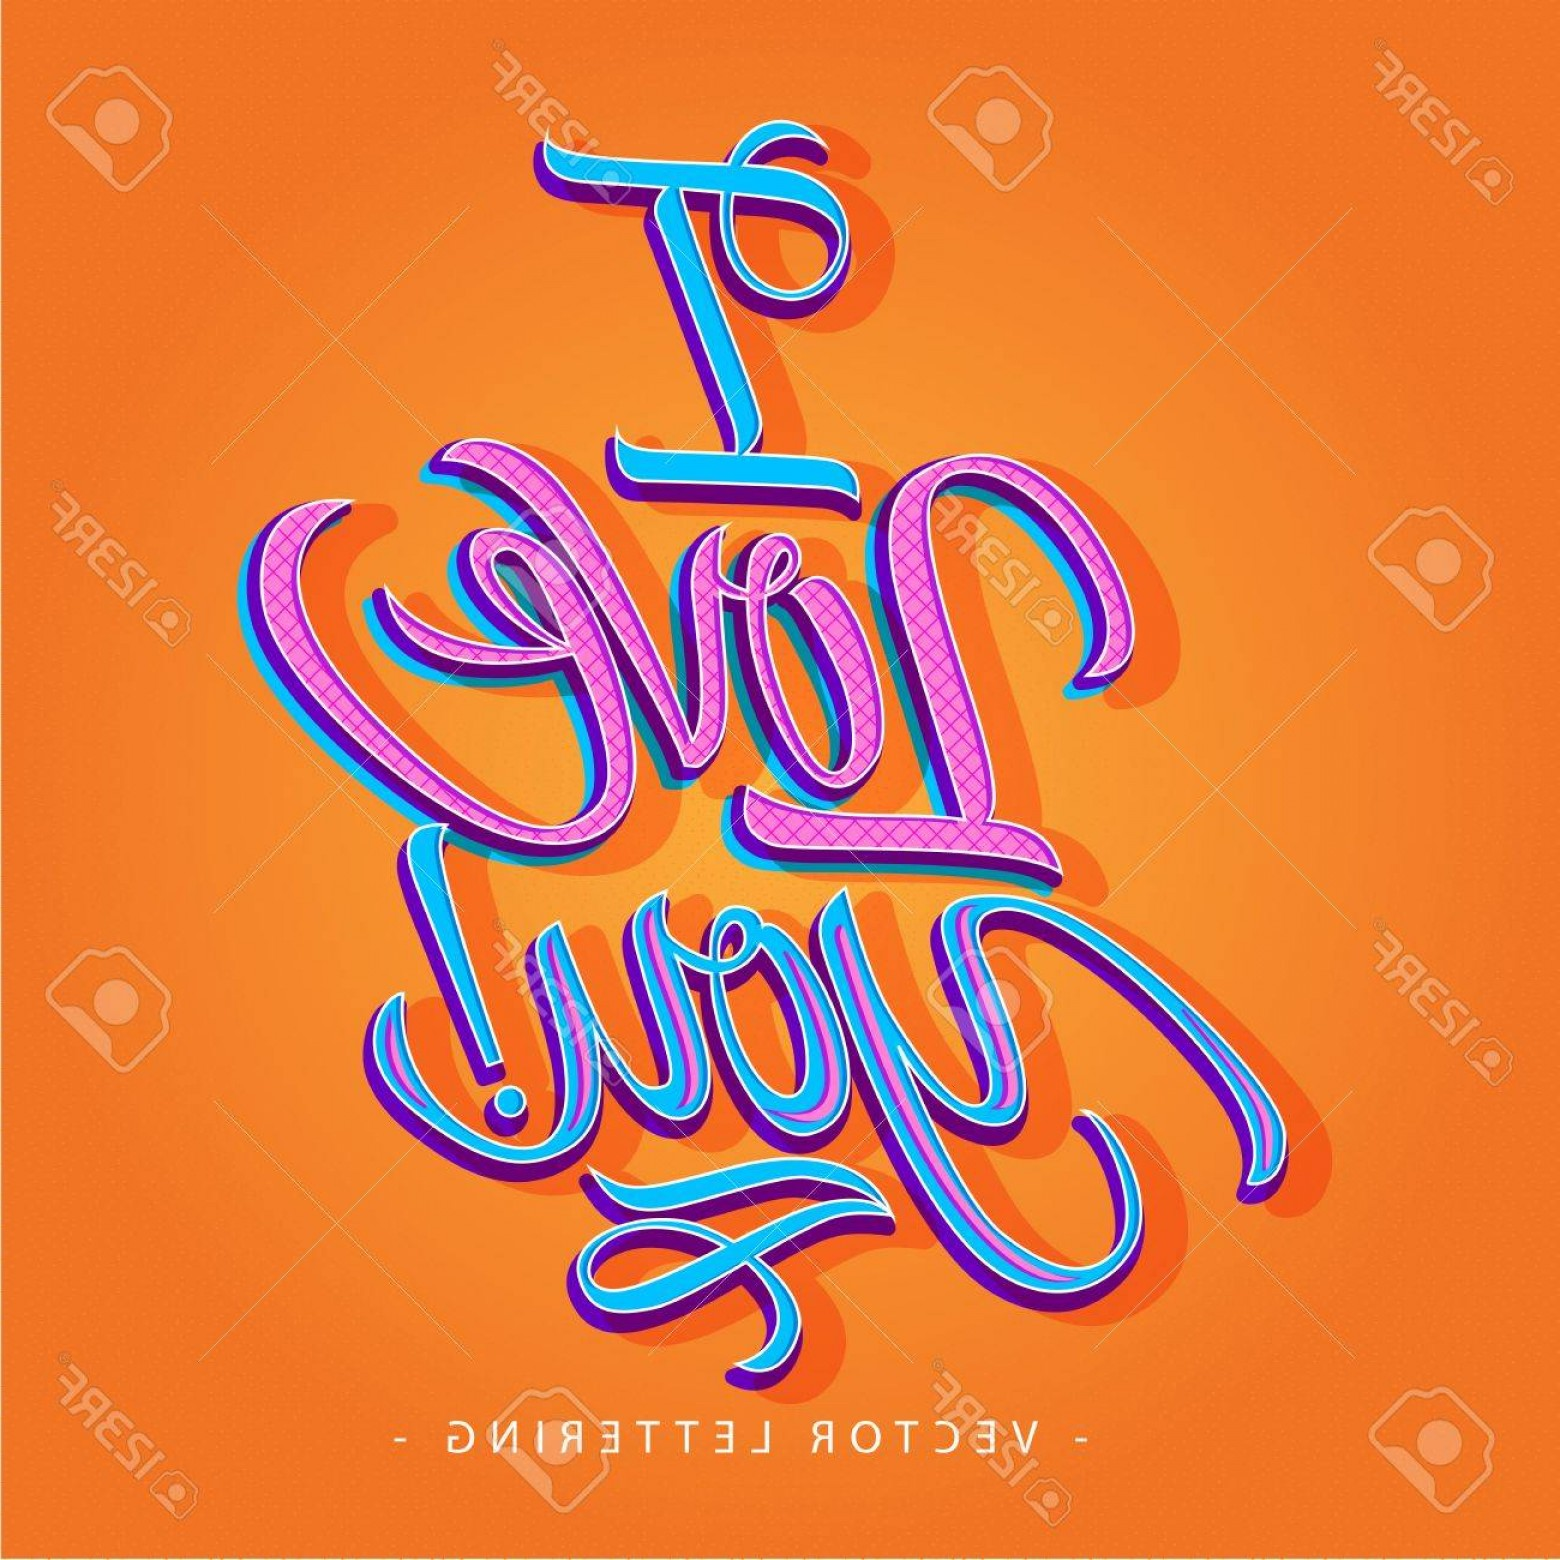 I Love You Mark Vector: Photocolorful I Love You Inscription With Exclamation Mark Isolated On Orange Background